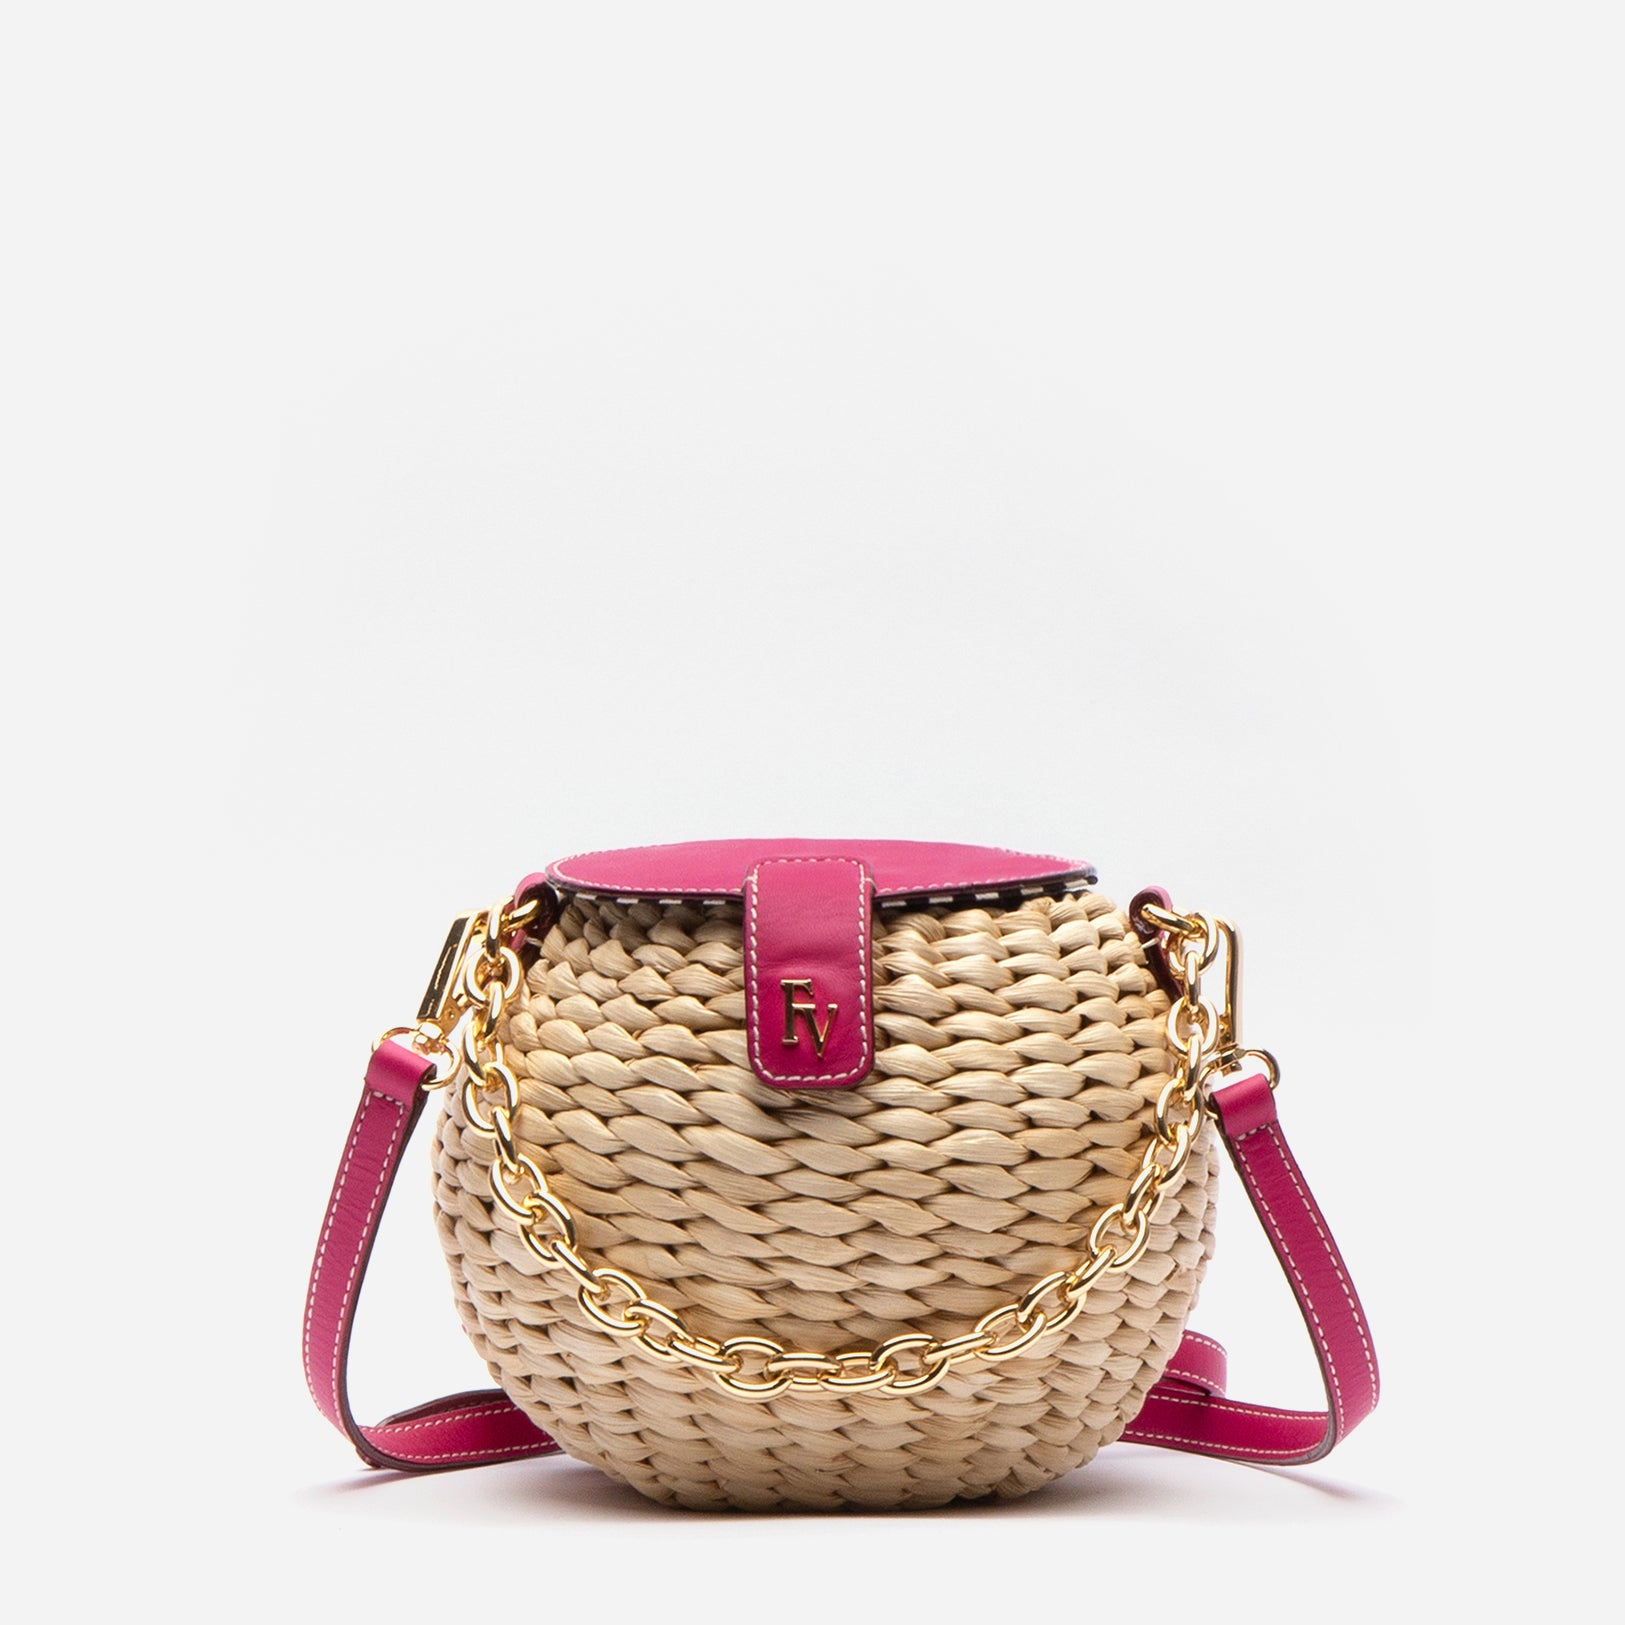 Honeypot Basket Crossbody Bright Pink - Frances Valentine